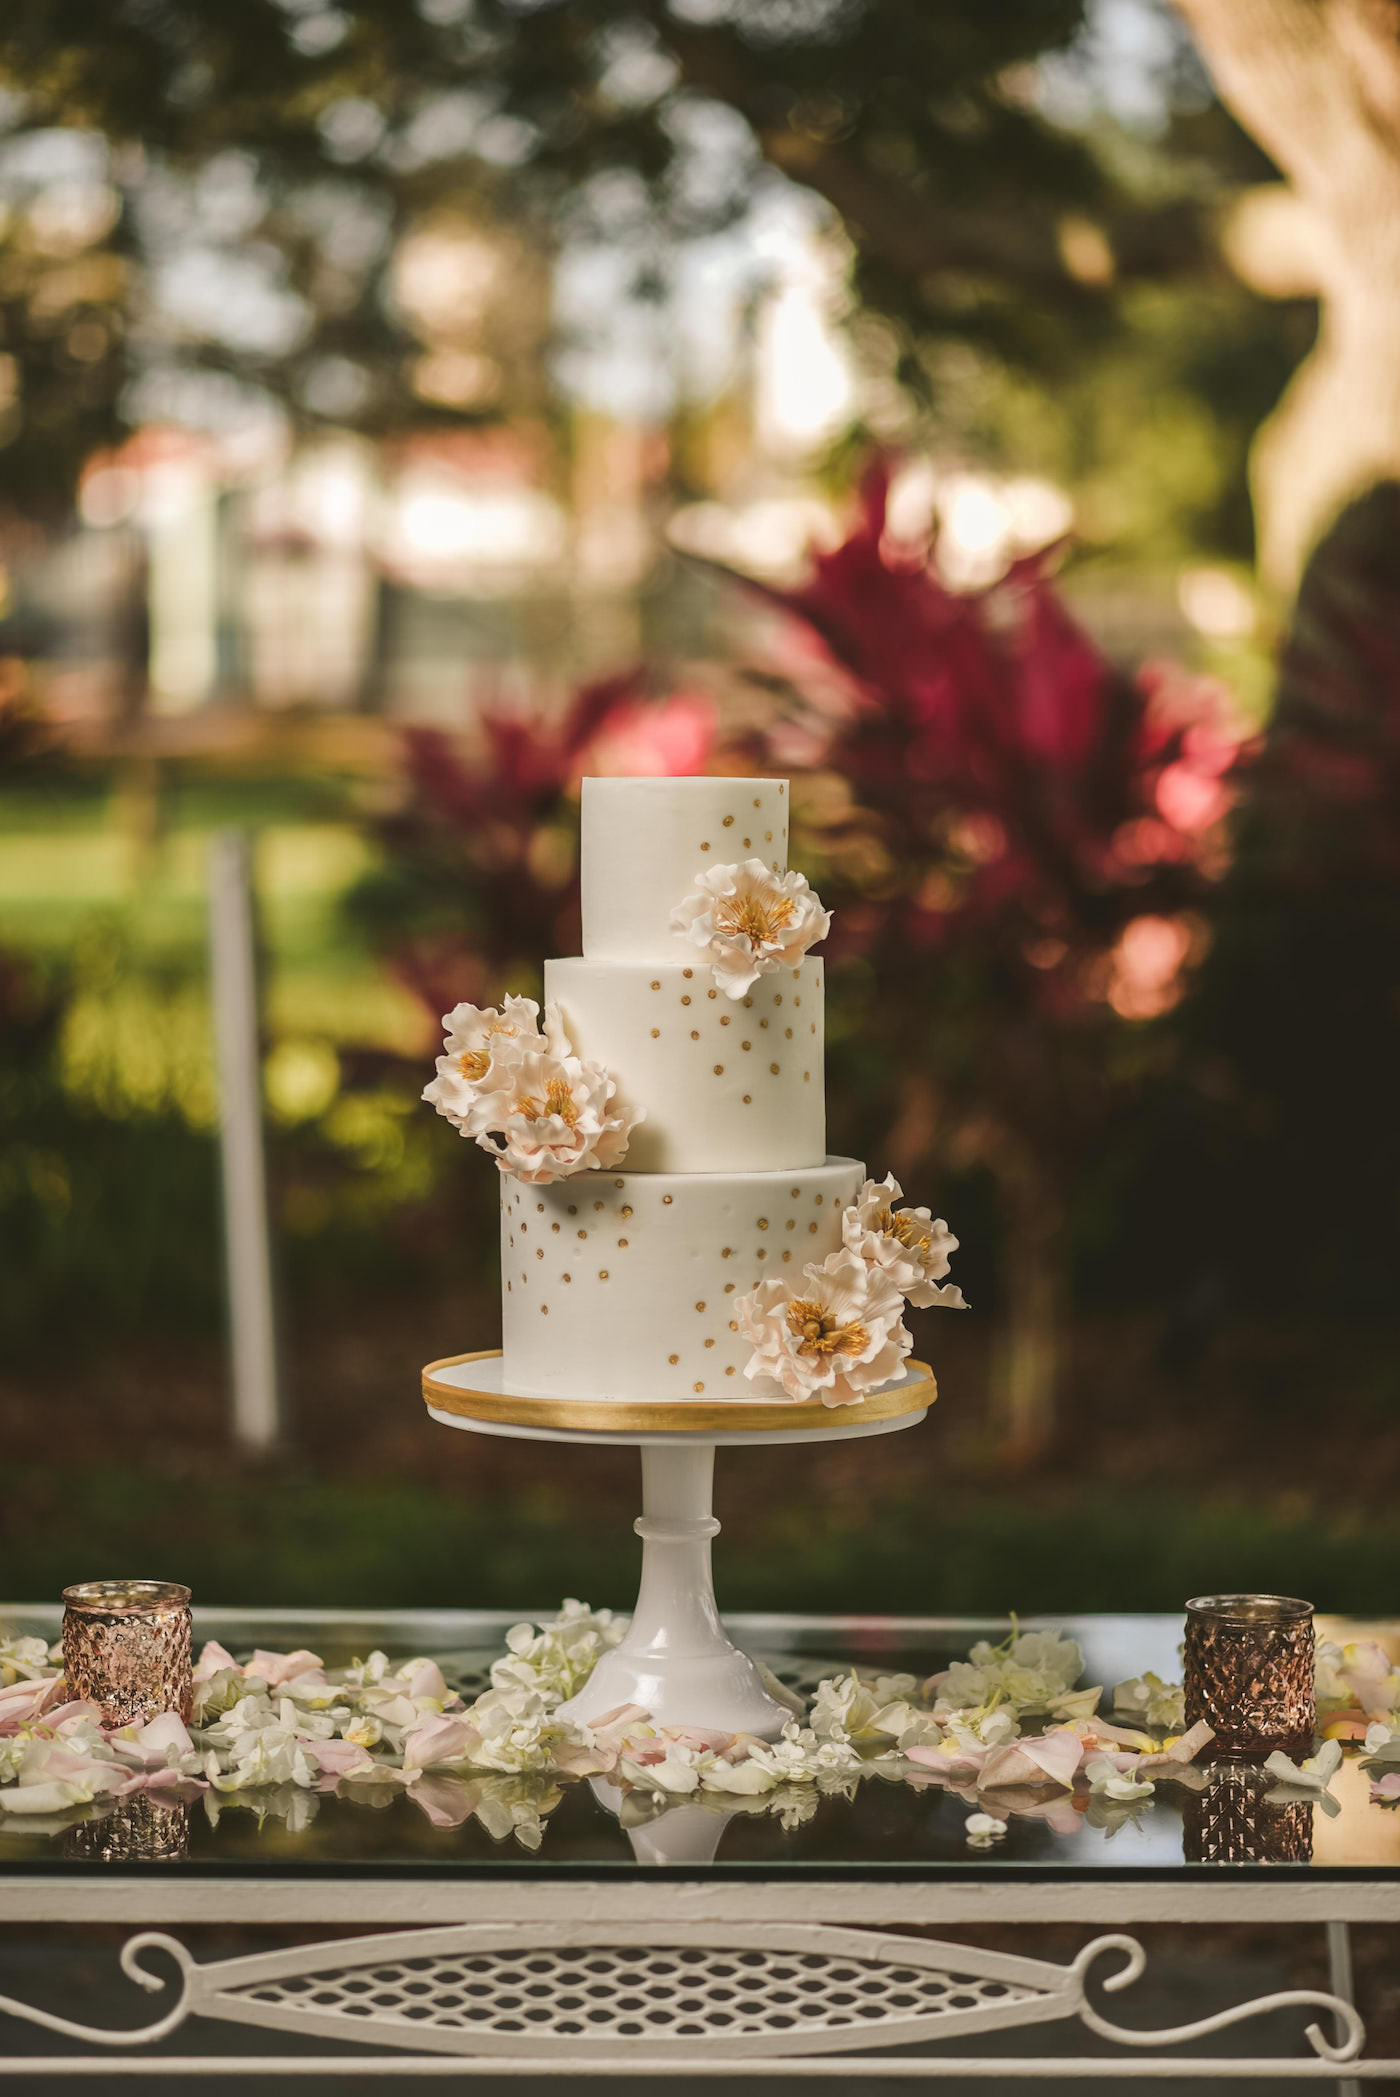 Tampa Bay Cake Company Three Tier Wedding Cake with Rose Gold Polka Dots and Blush Pink Sugar Flower Peonies on a Round Pedestal Cake Stand surrounded by Petals and Candles